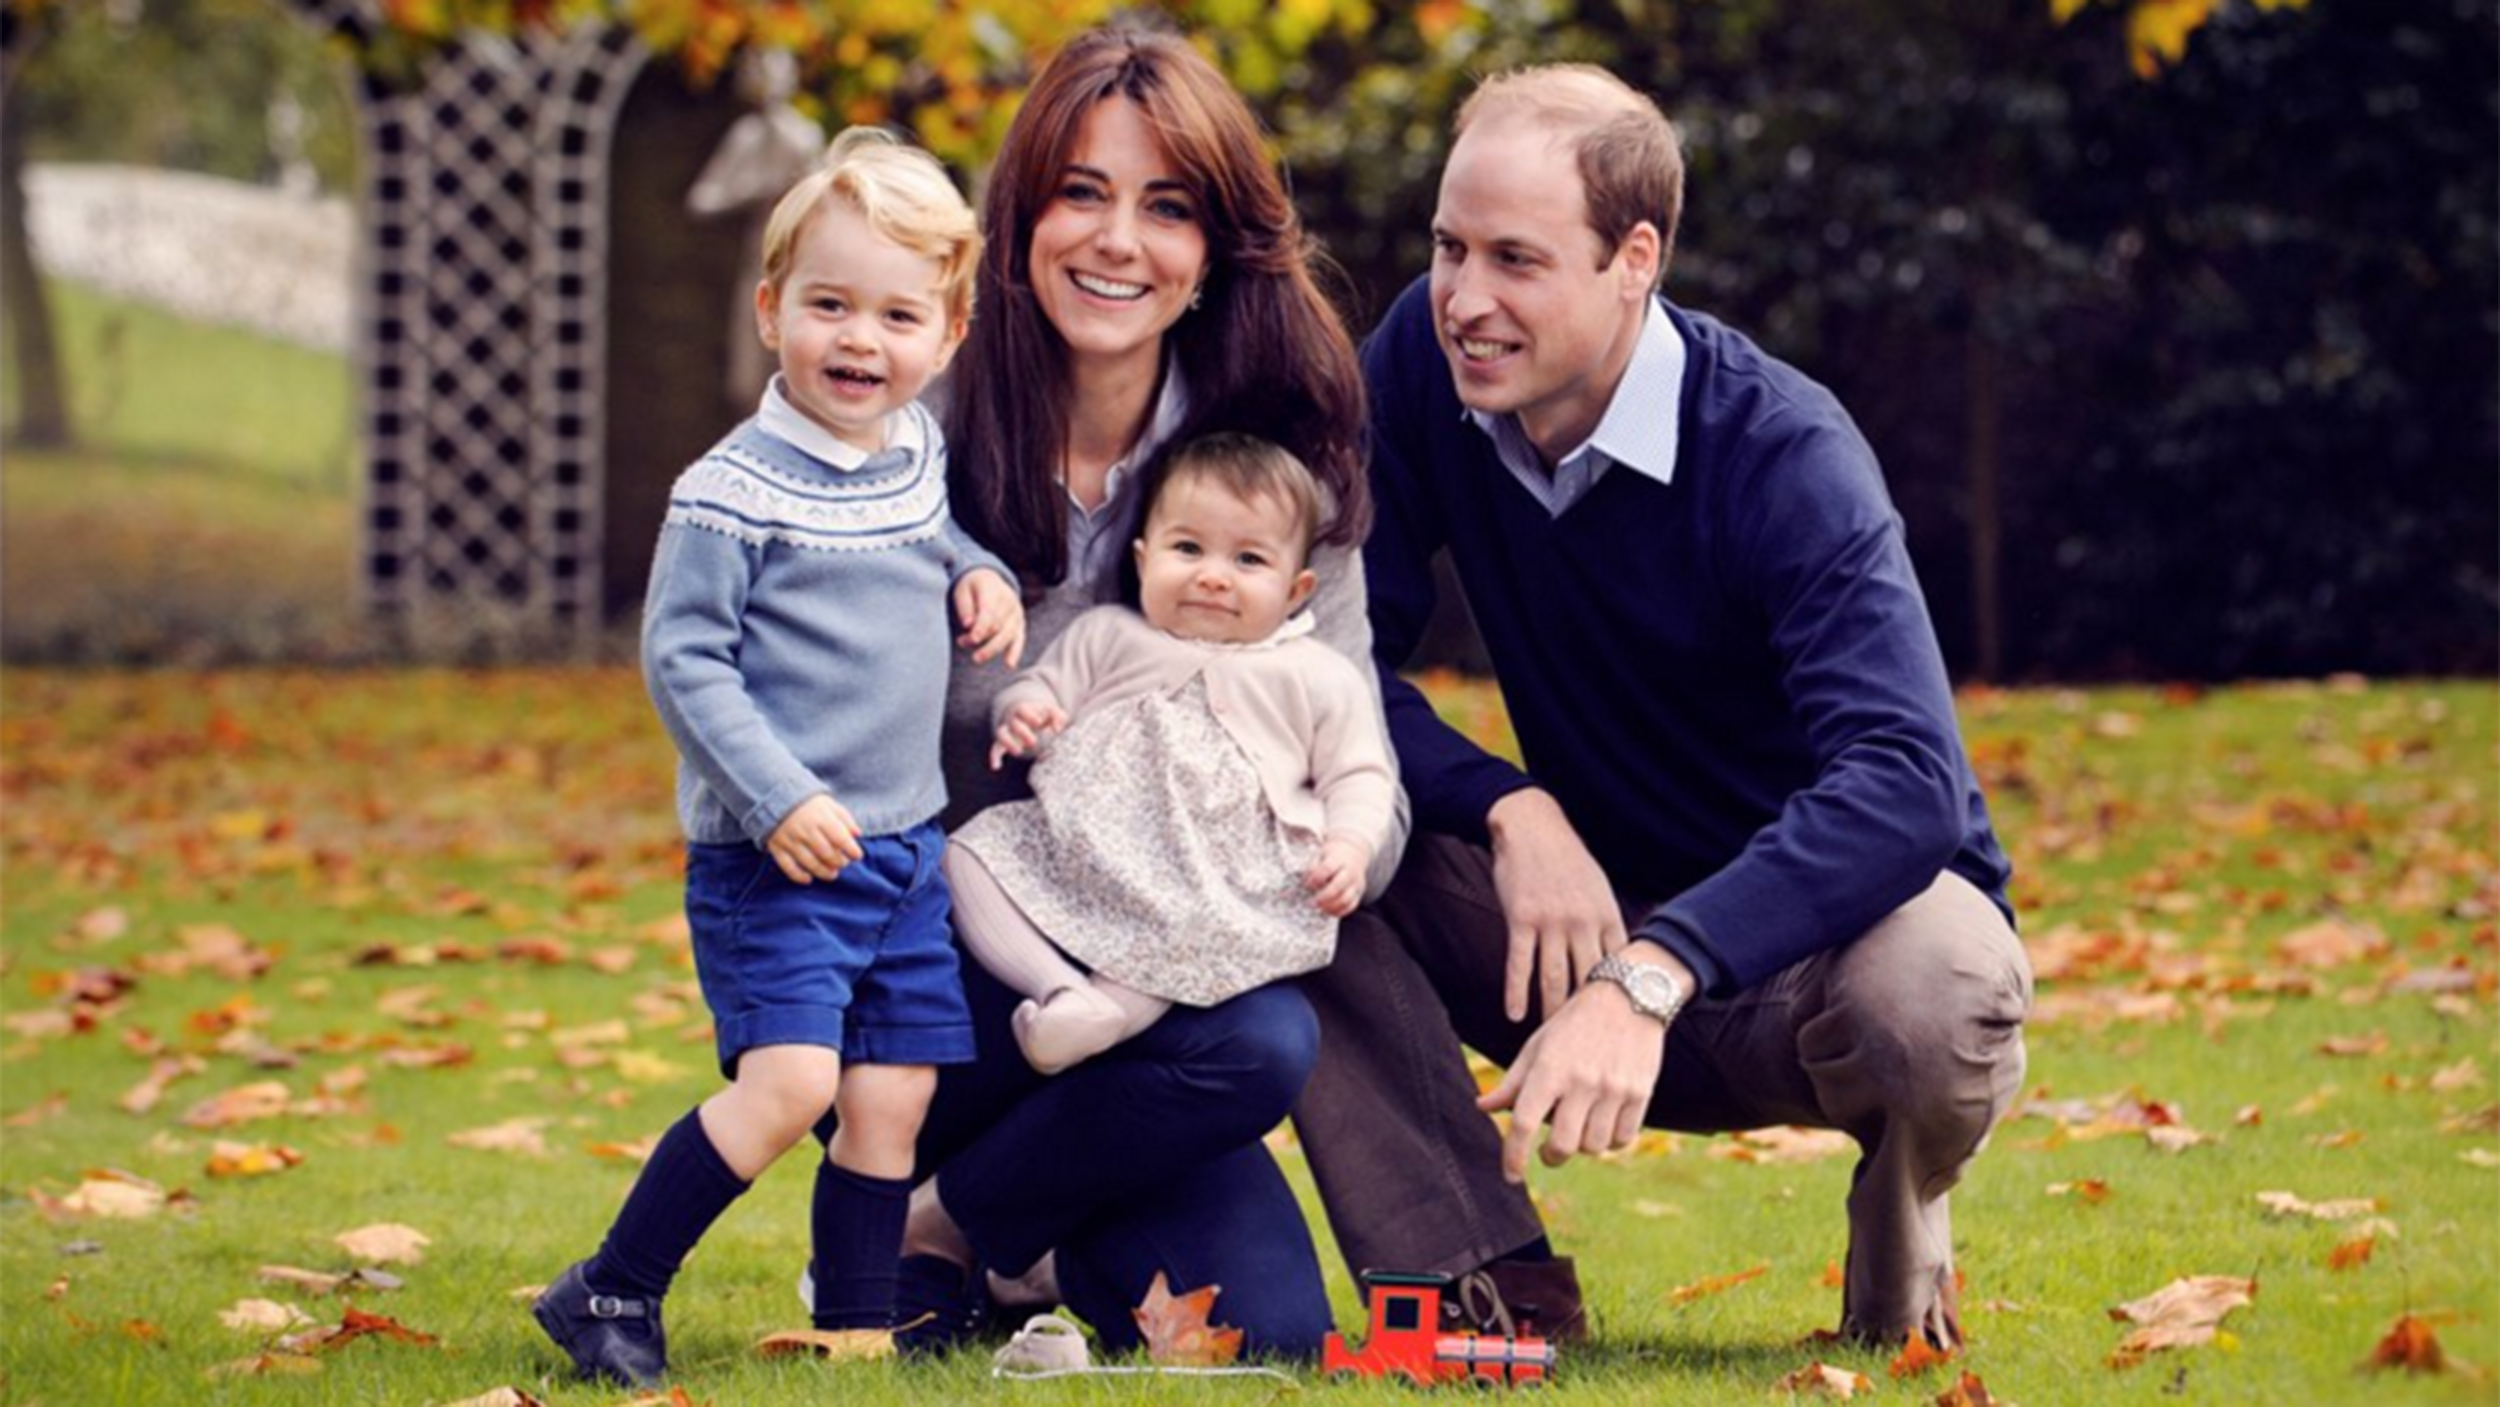 Royal family releases new Christmas portrait, announce George's school plans